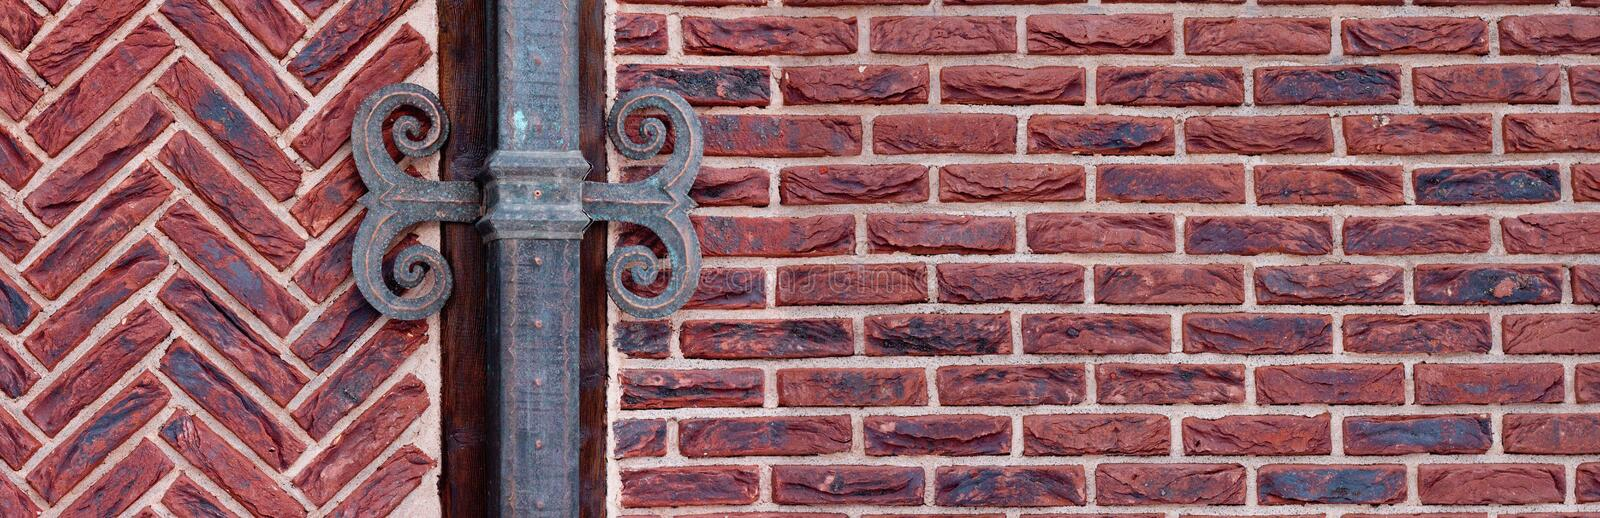 Red brick wall with shod deco. R panoramic royalty free stock image